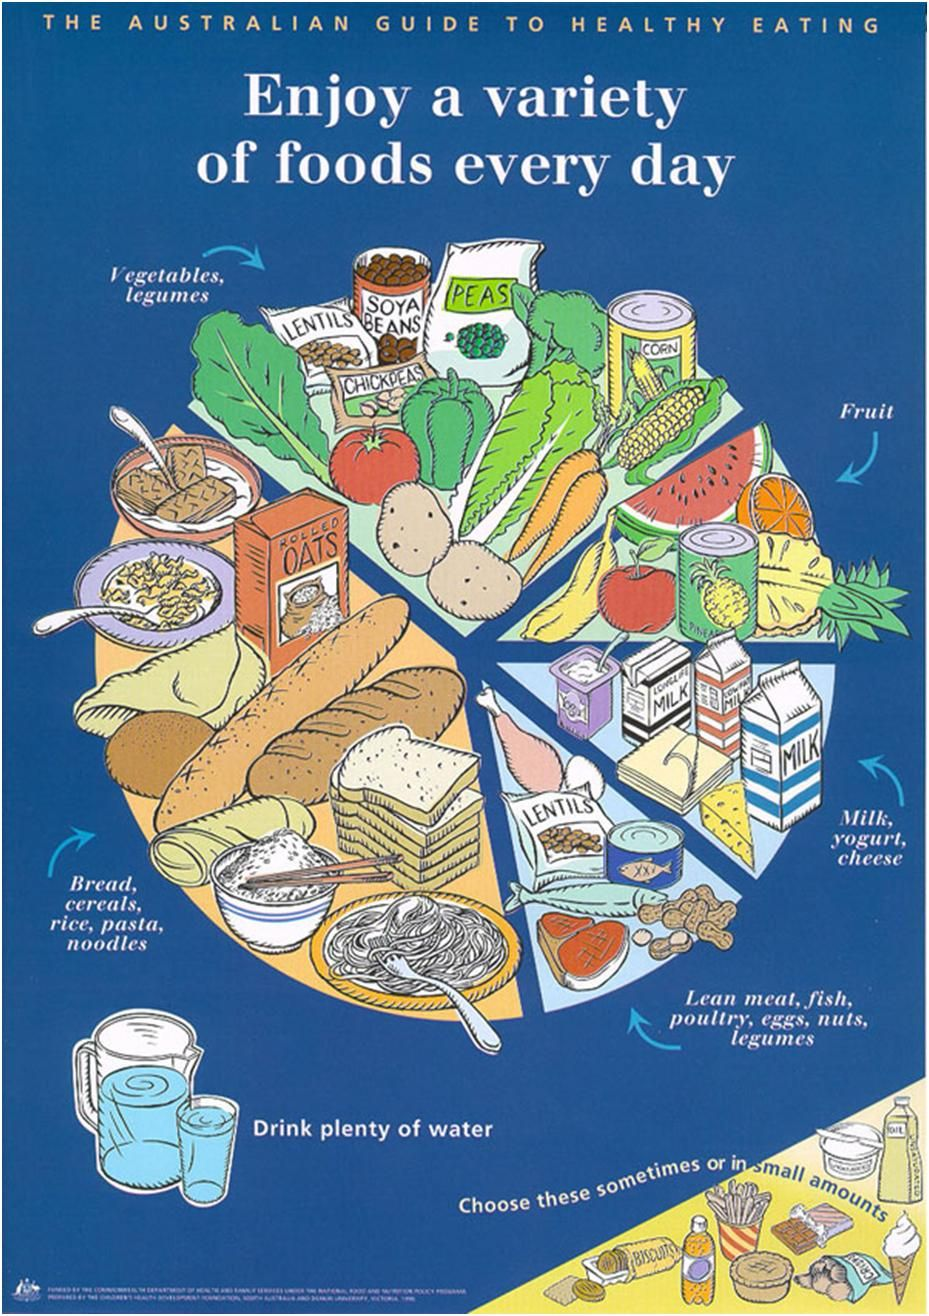 Wow how different from the usa pyramid enjoy a variety of foods xosize health and fitness solutions healthy eating pie chart nvjuhfo Gallery